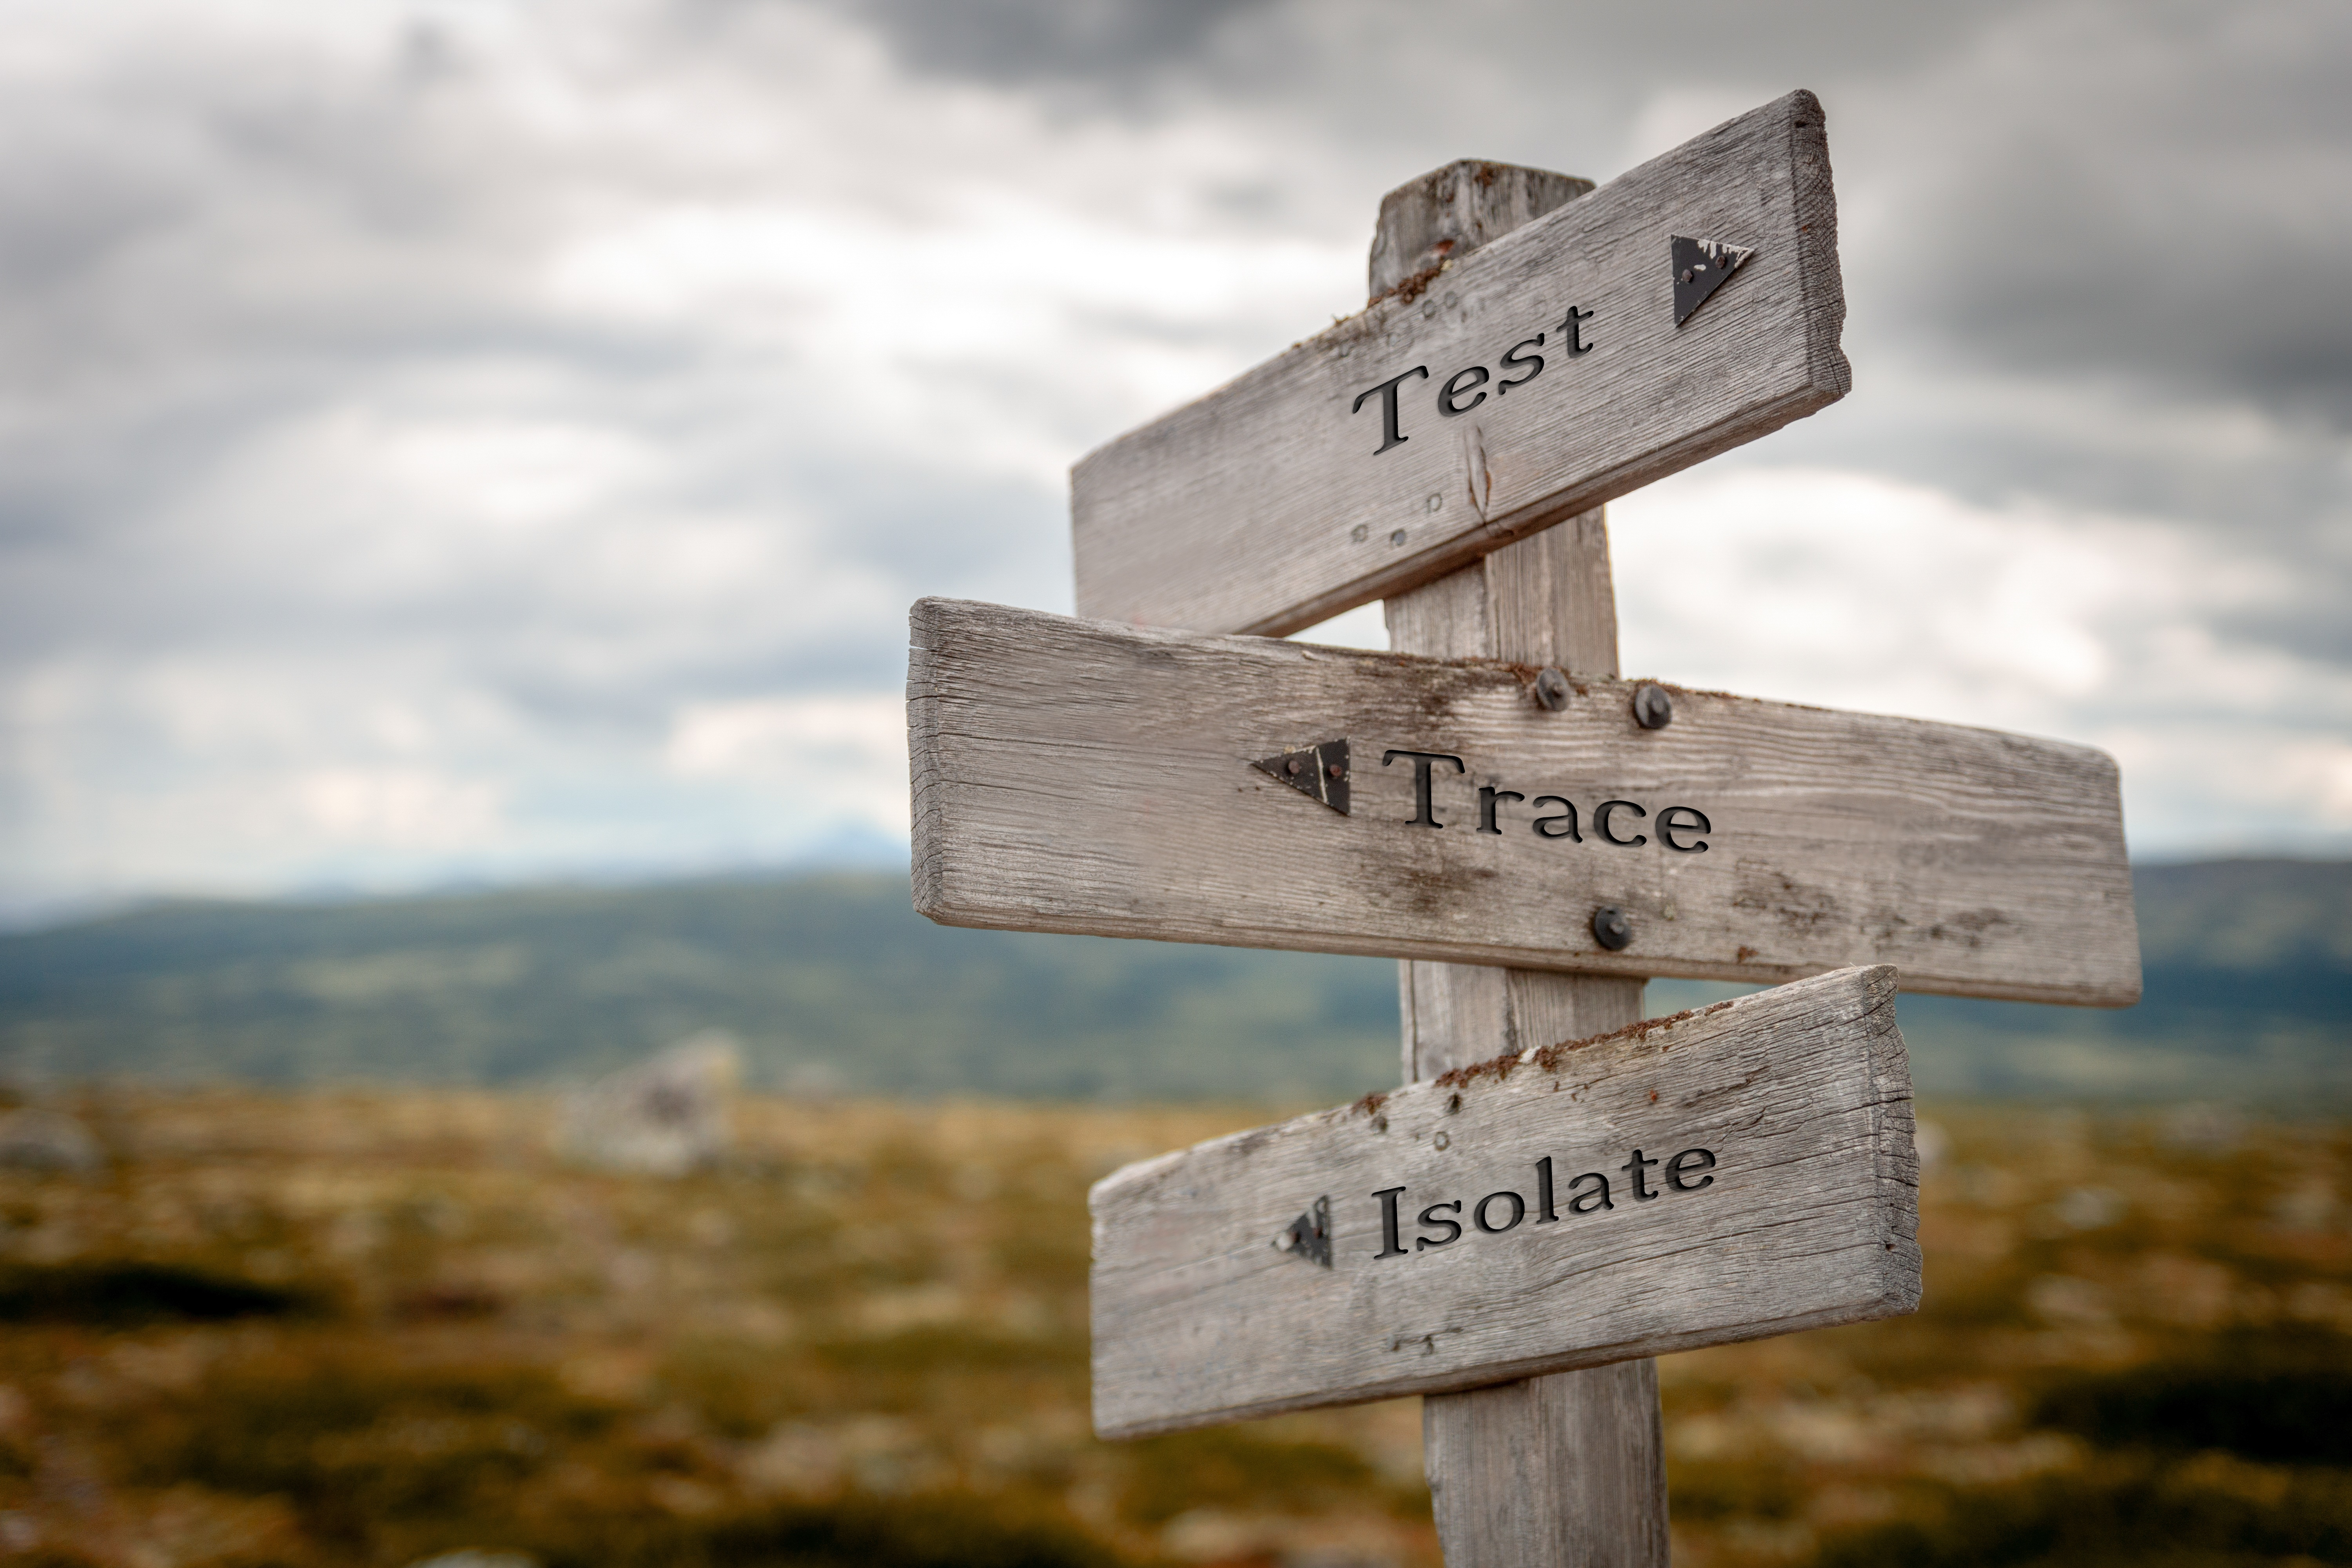 Signpost with signs saying 'Test', 'Trace' and 'Isolate' pointing in different directions